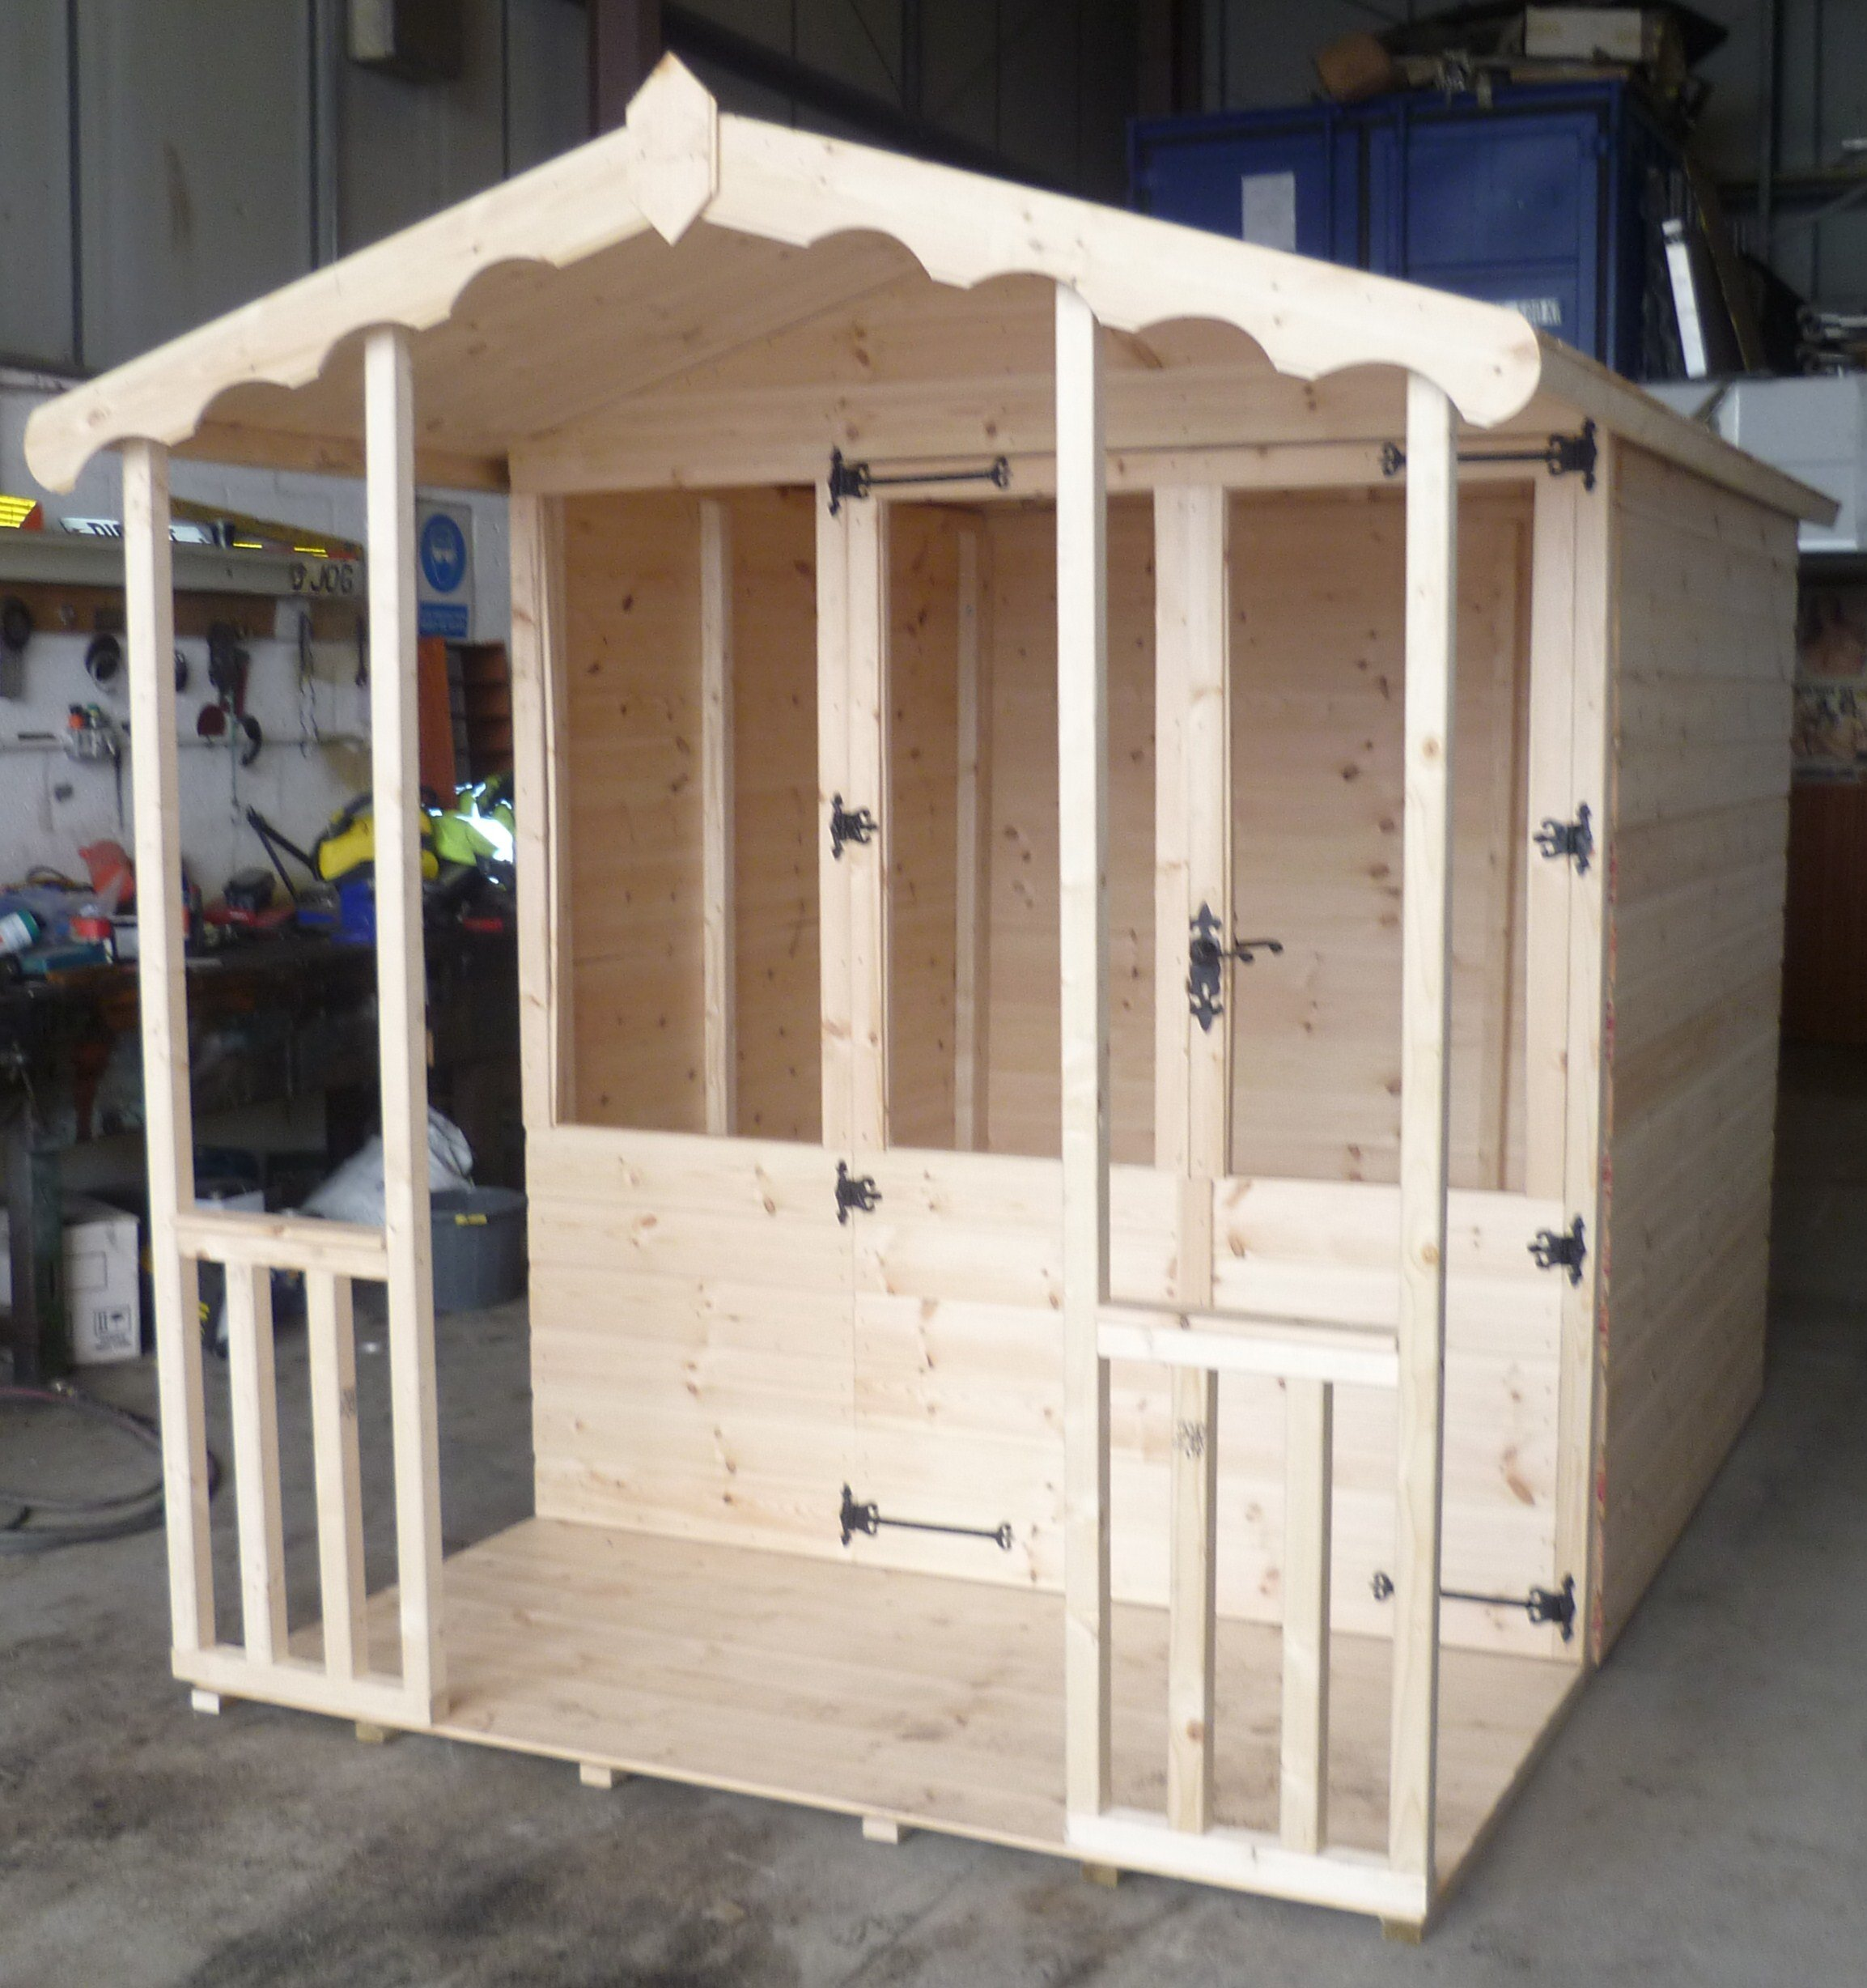 Bespoke playhouses